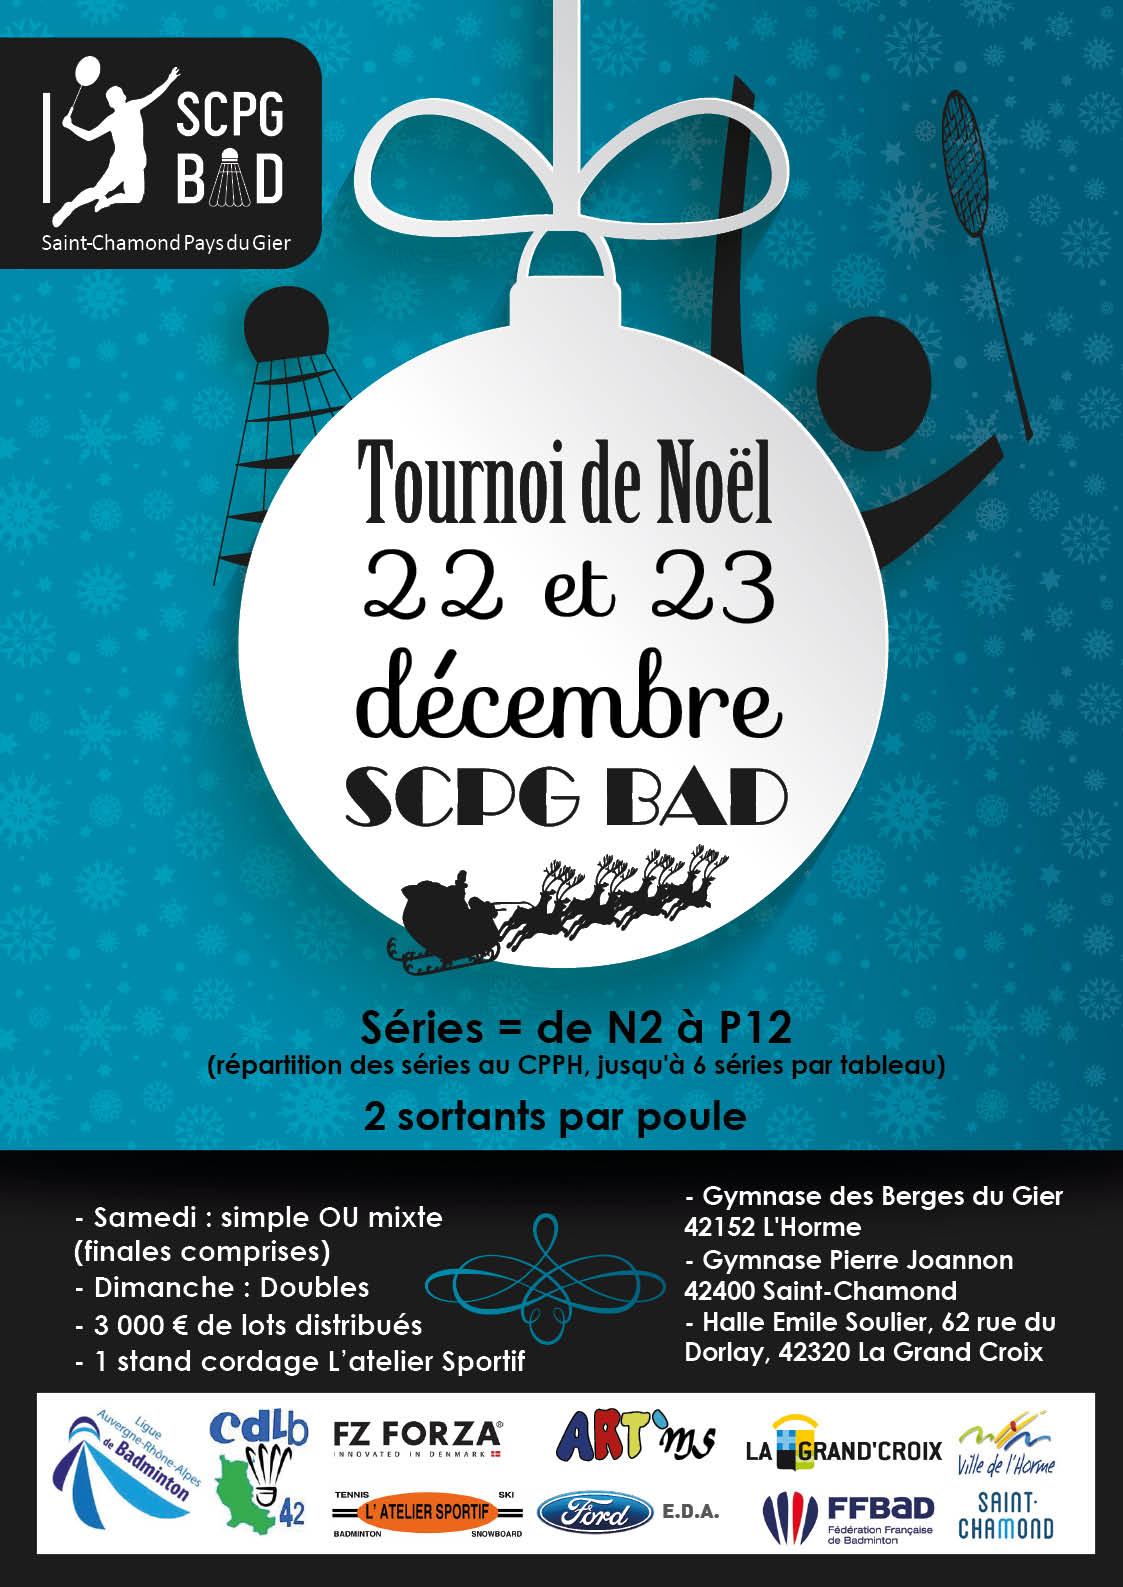 Tournoi Noel de Saint-Chamond